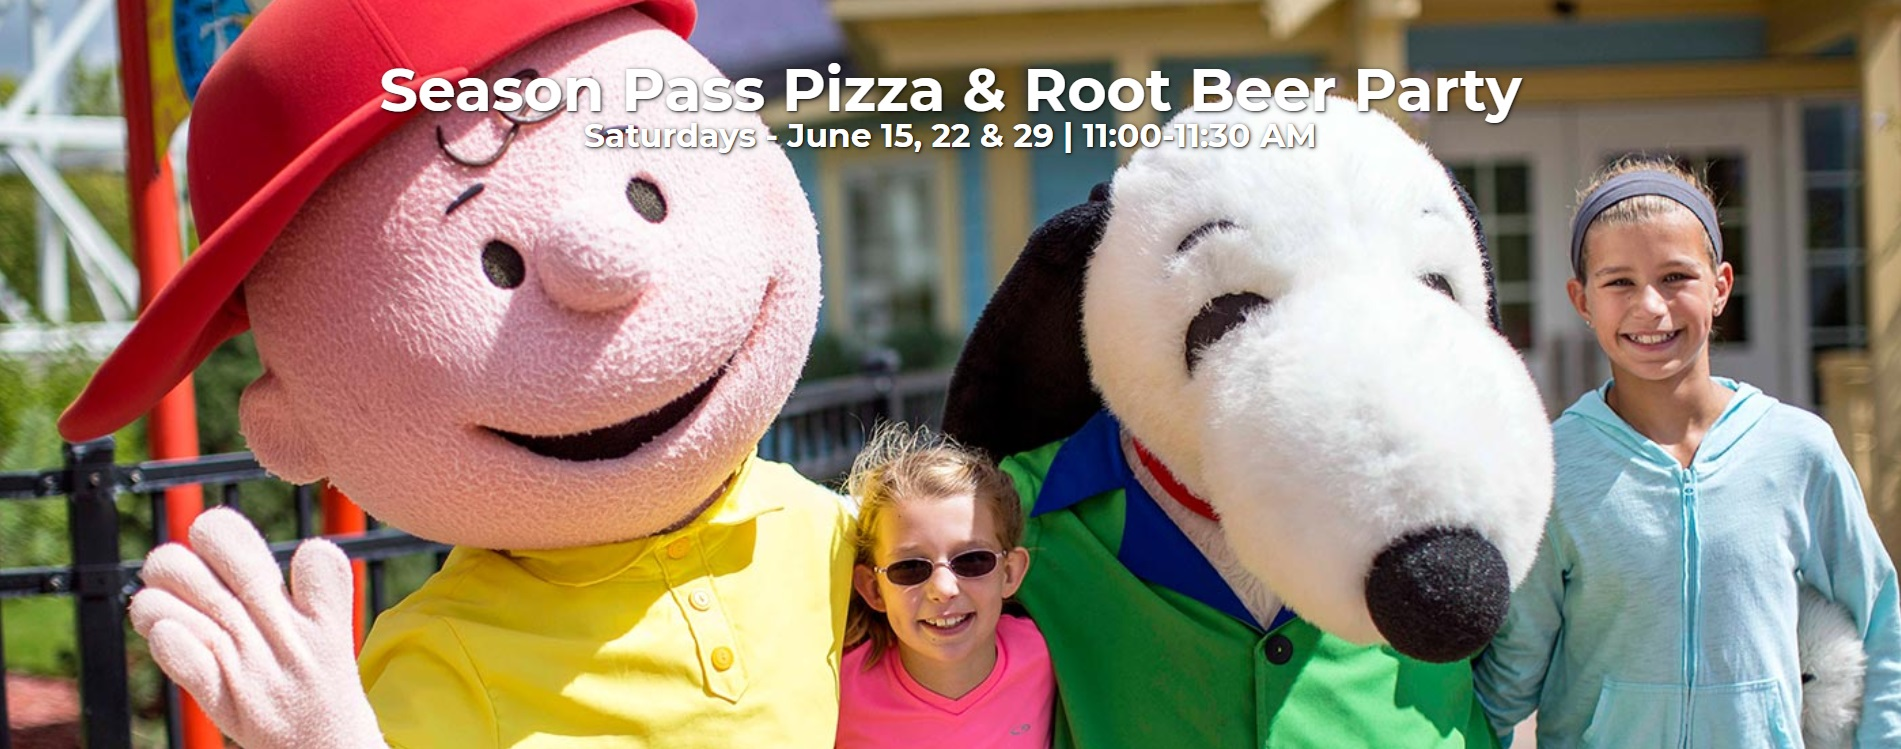 Season Pass Pizza & Root Beer Party